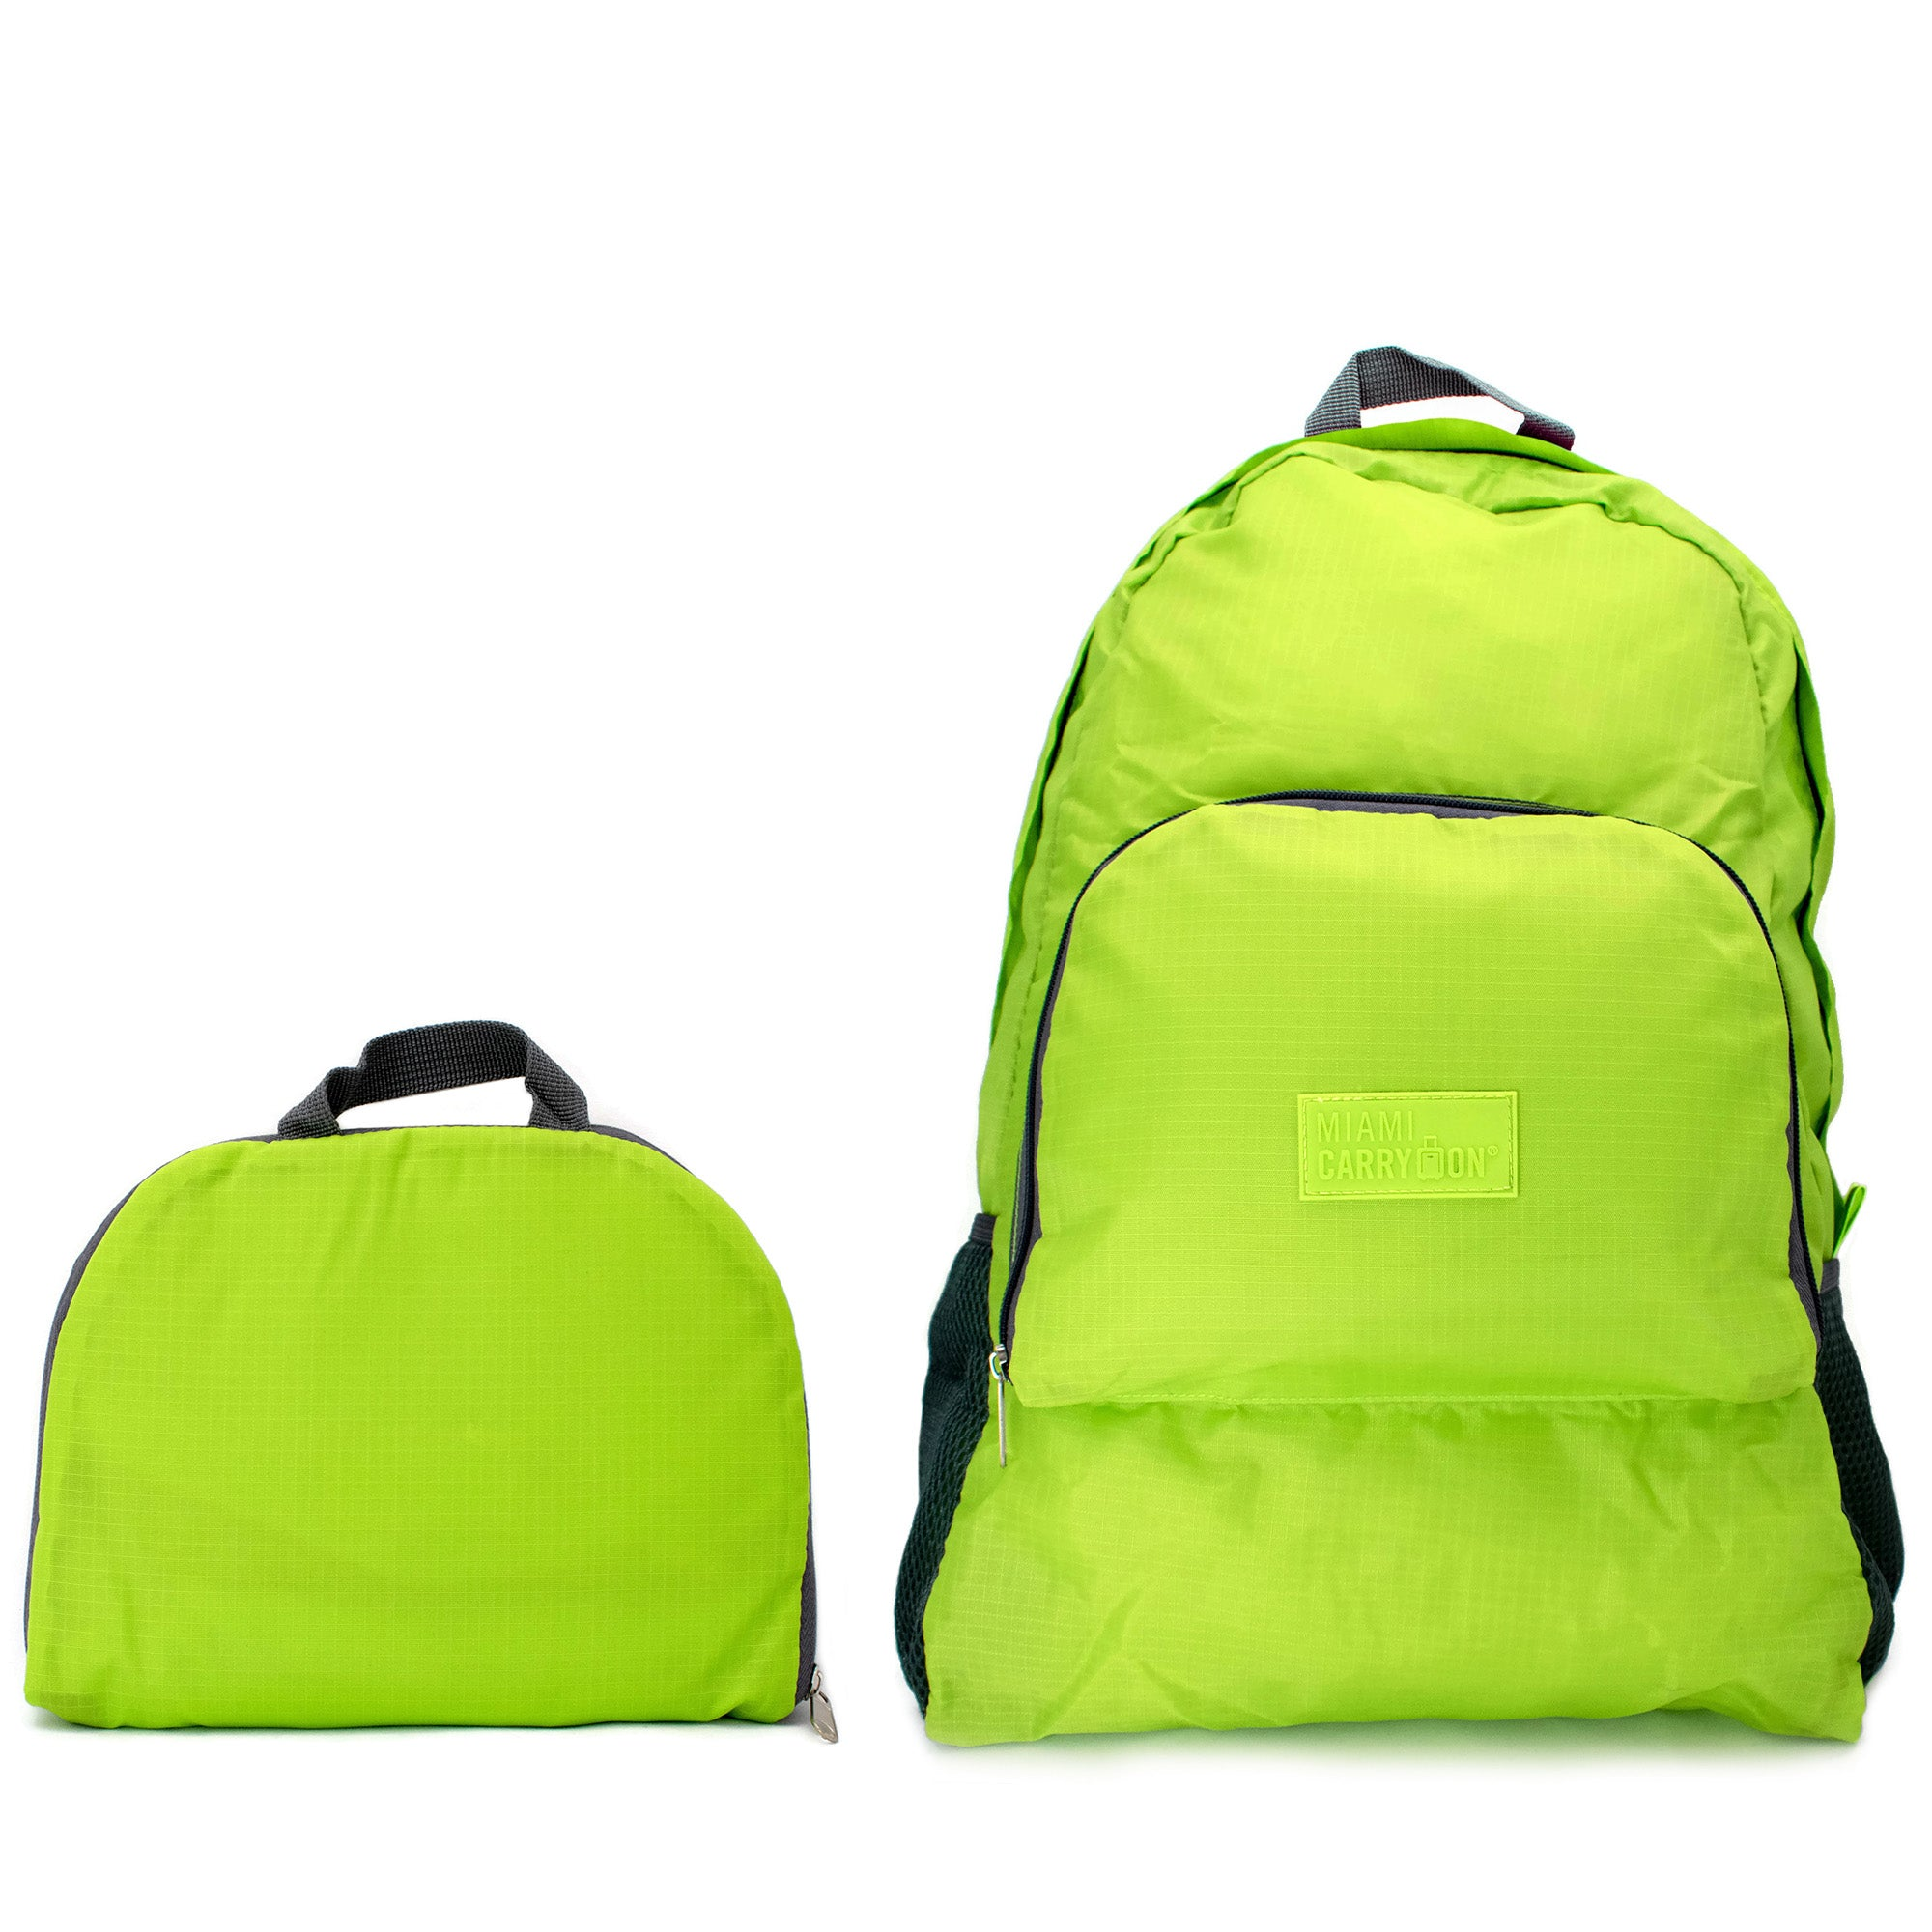 Water-resistant Foldable Backpack - Light Green - Travellty